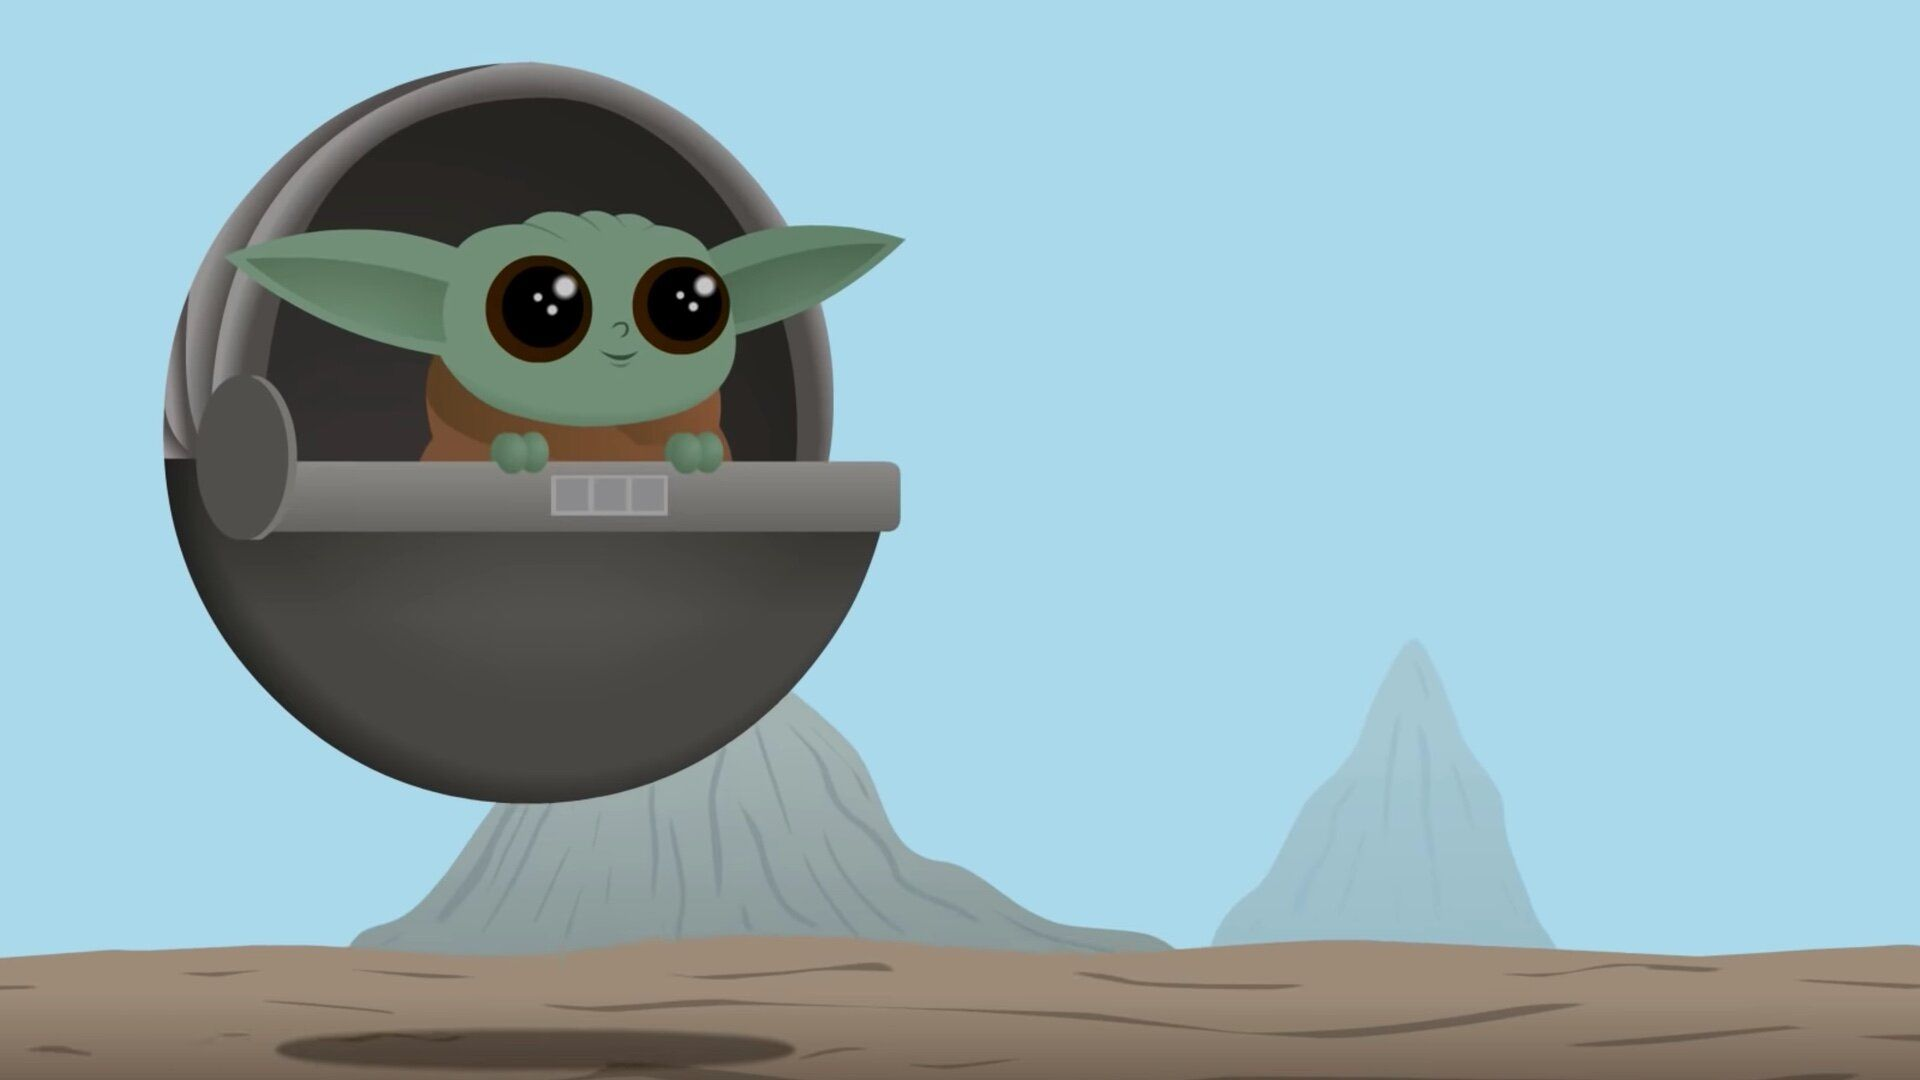 Baby Yoda Minimalist 1920x1080 Wallpapers - Wallpaper Cave